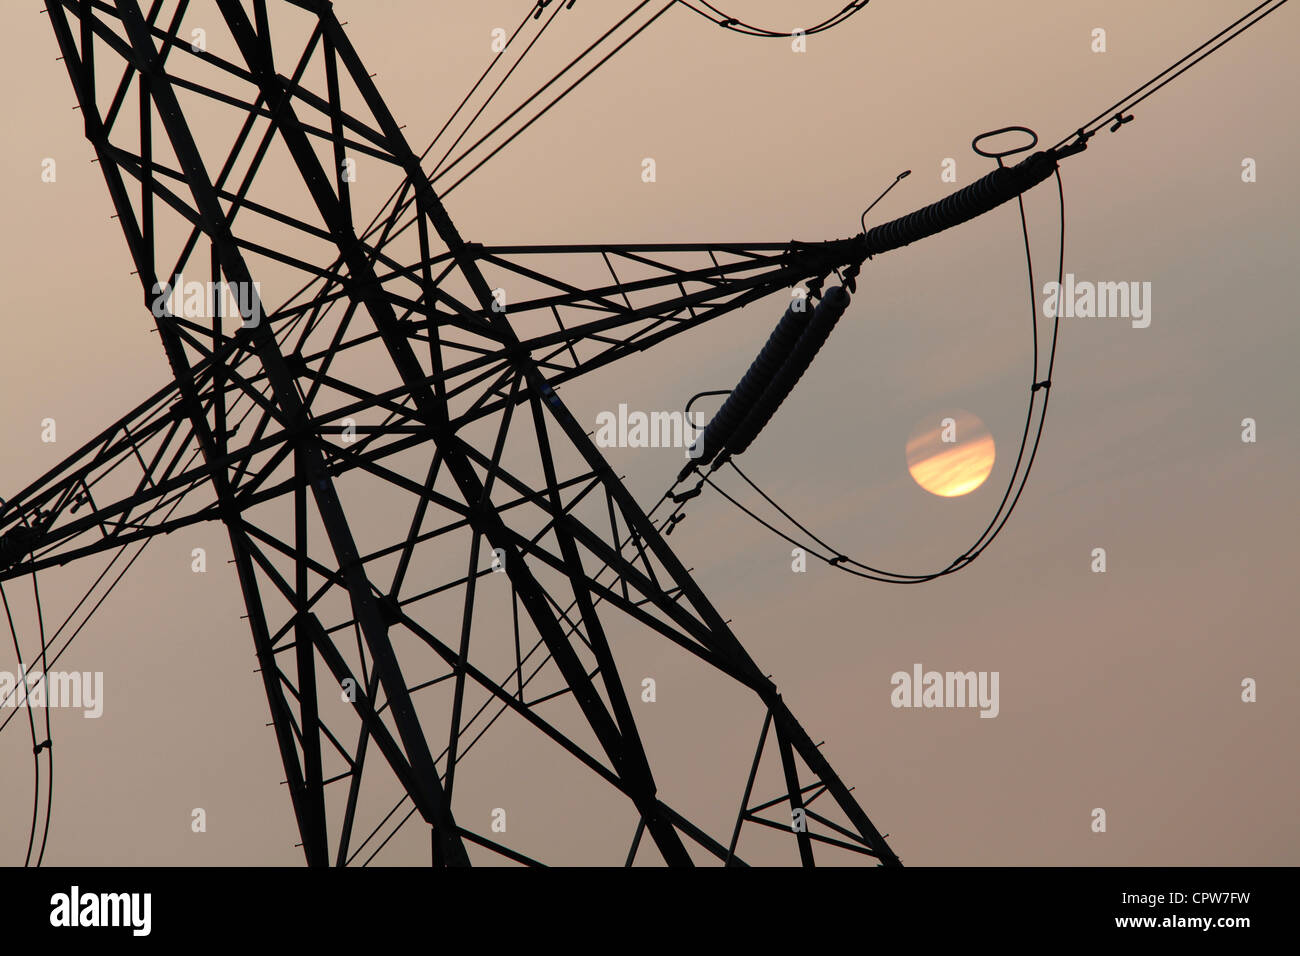 Electricity pylons at sunset in Manchester, UK - Stock Image